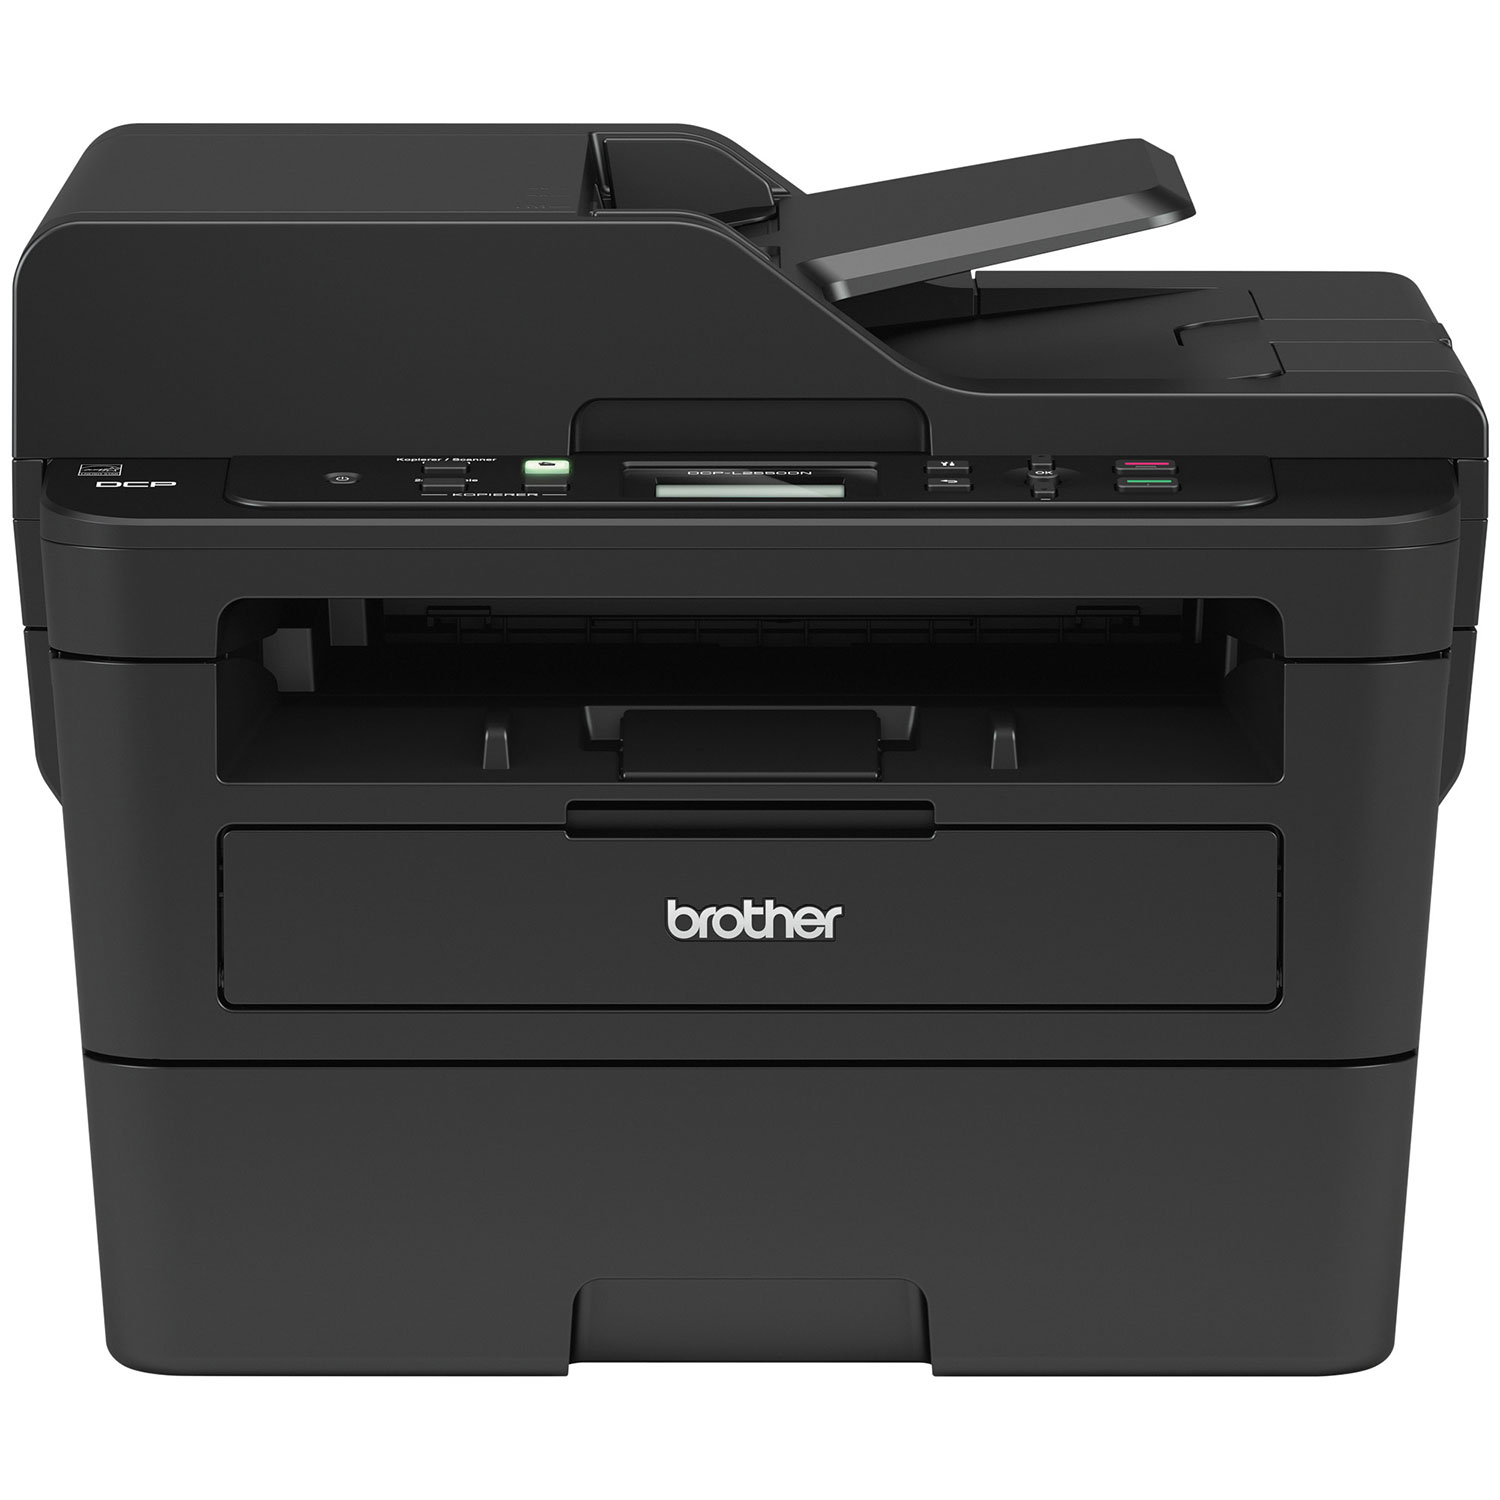 Printers scanners fax machines best buy canada brother monochrome wireless all in one laser printer dcpl2550dw reheart Image collections